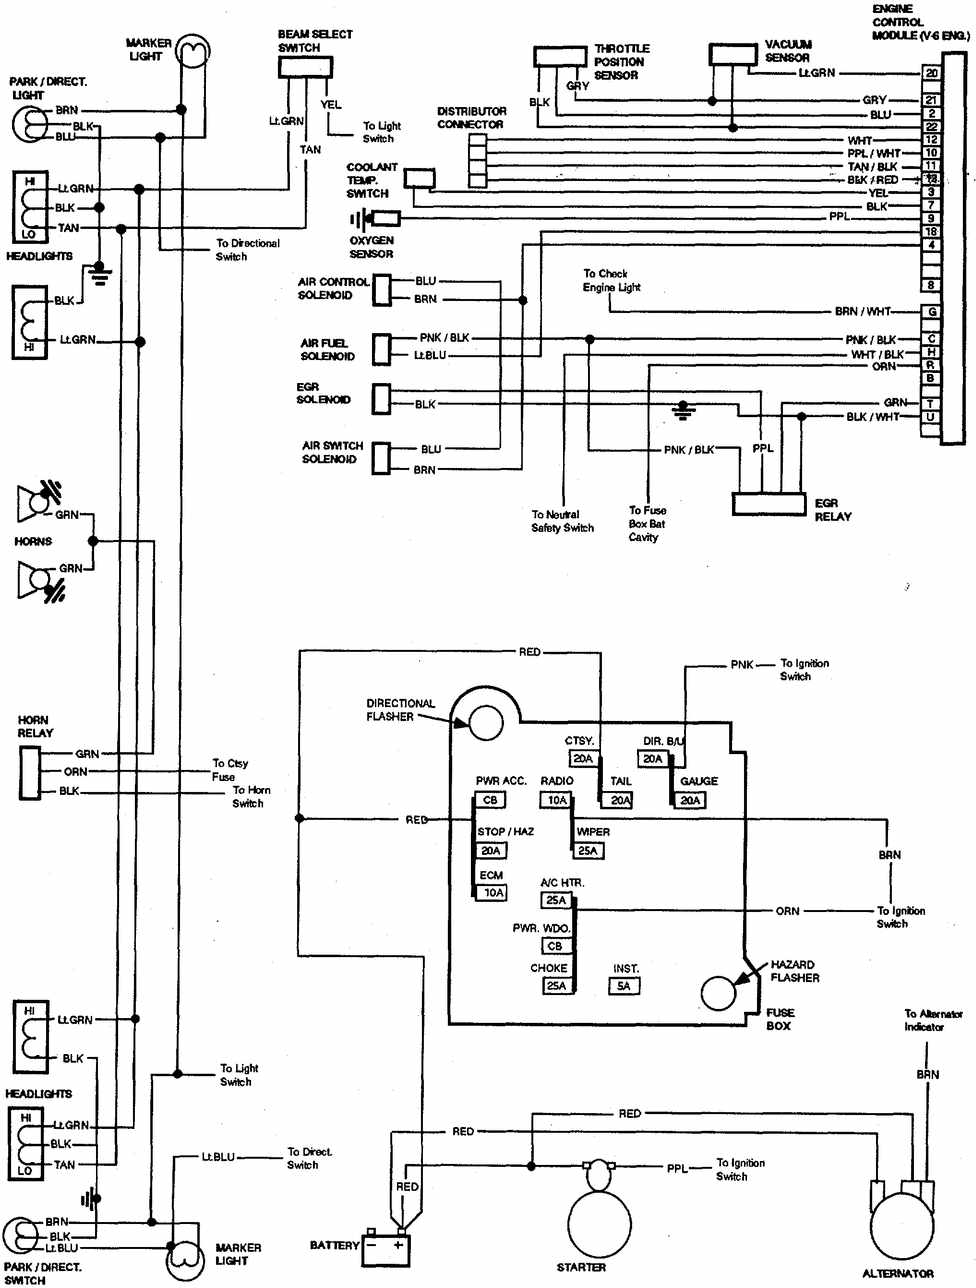 wiring diagram for 2002 gmc sierra